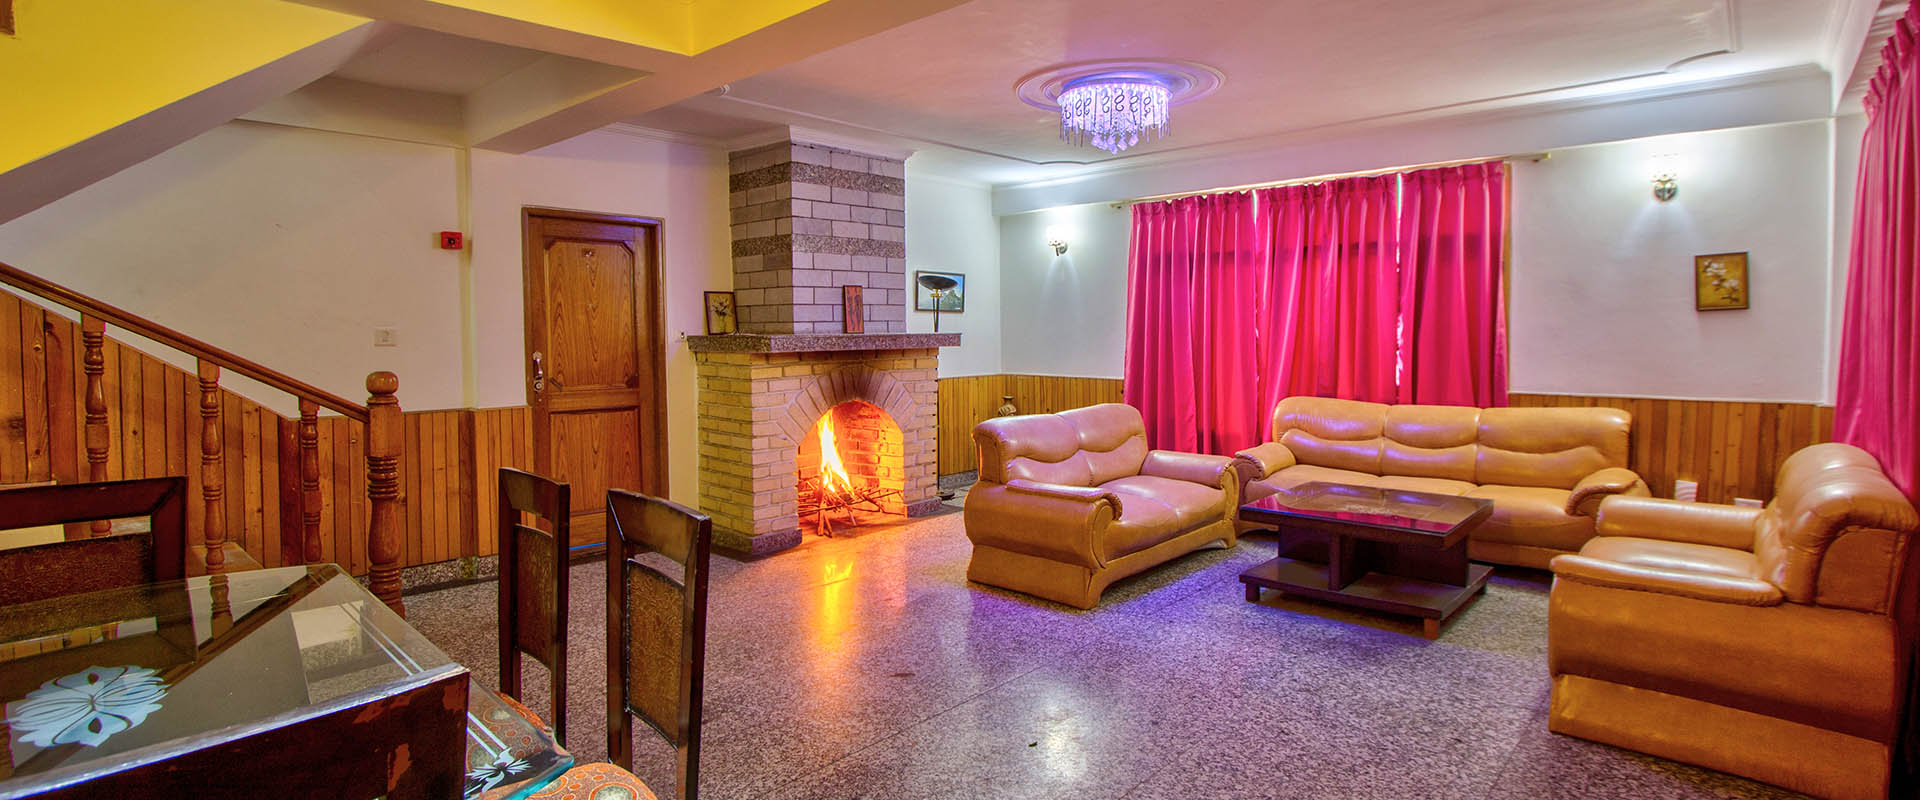 Luxury Cottage Sitting Area, Apple Bud Cottages Manali - budget cottages in manali